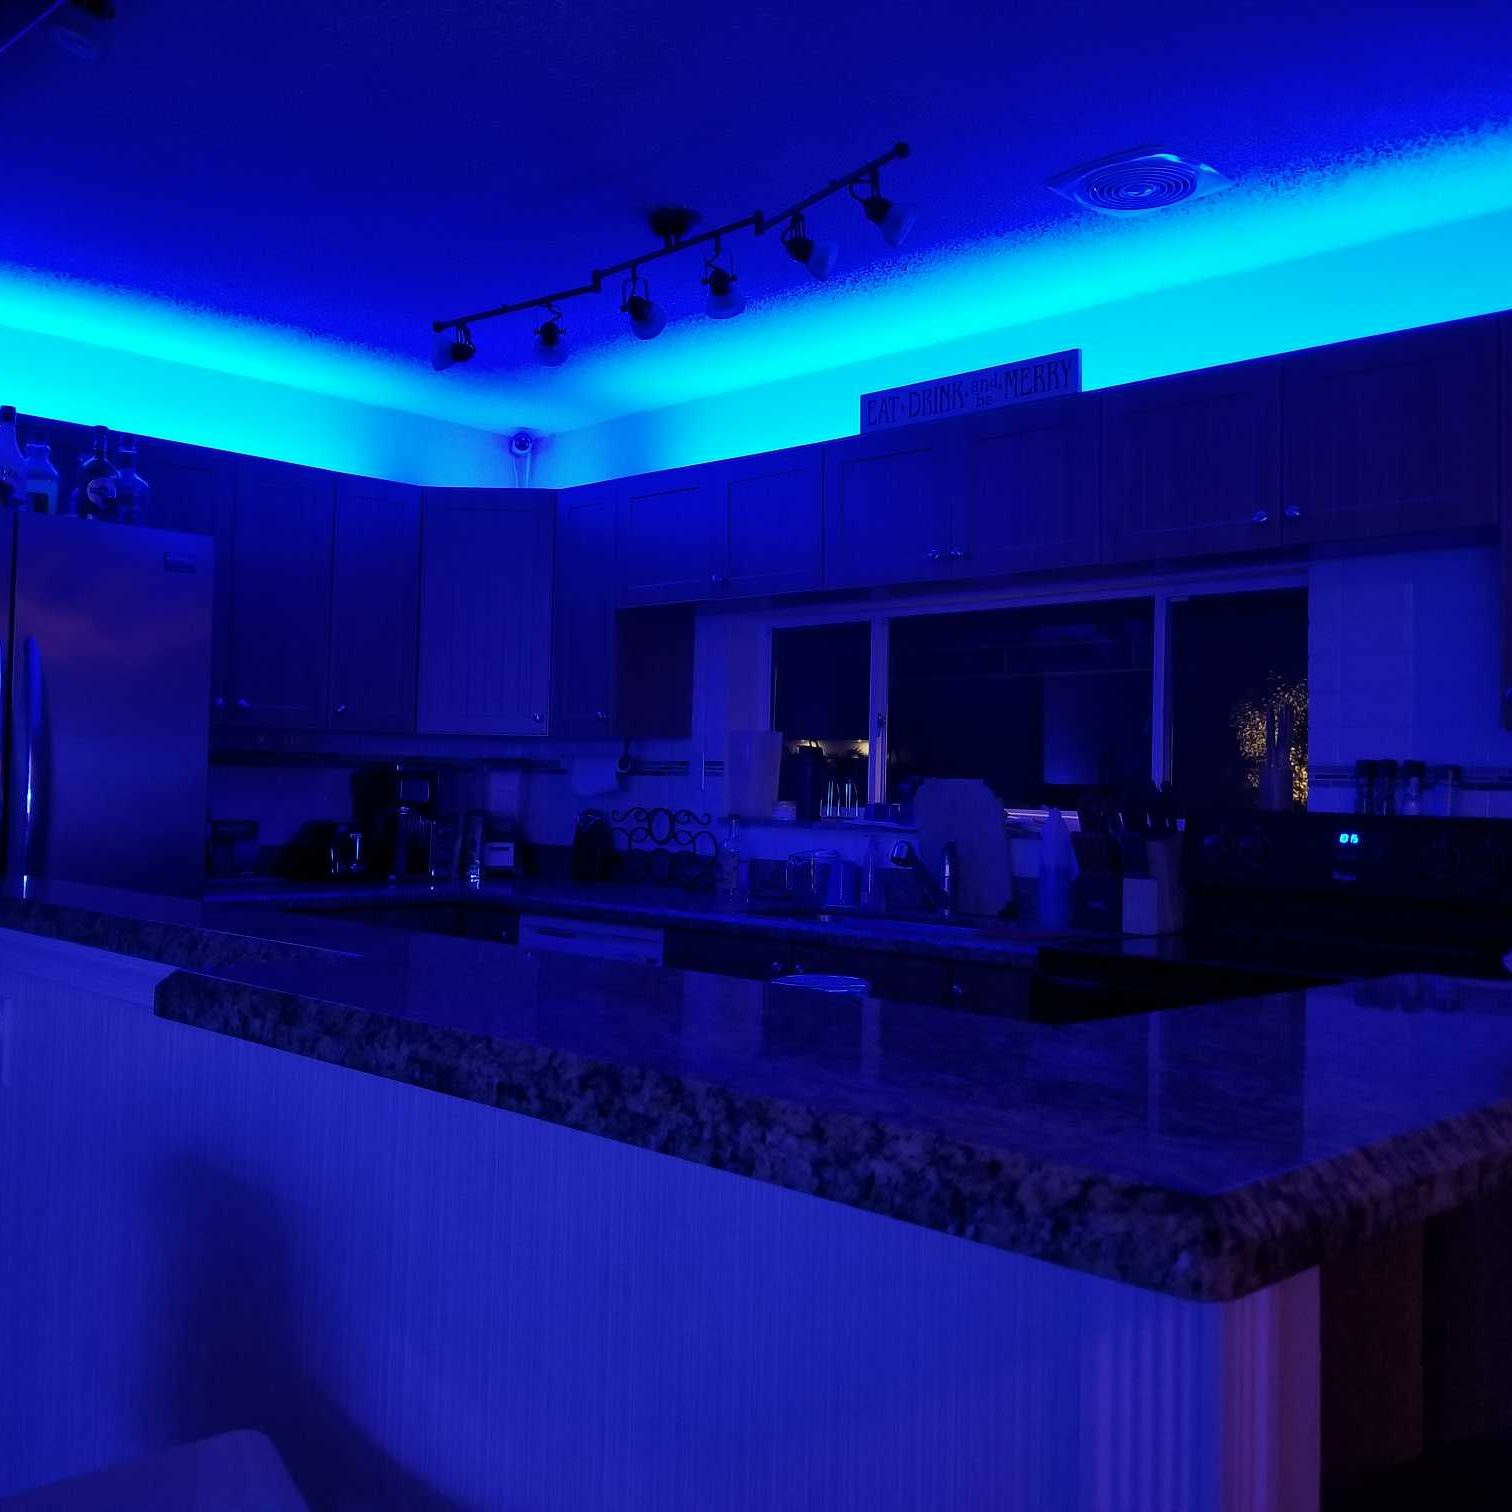 deerfield beach florida all pro led lighting comapny